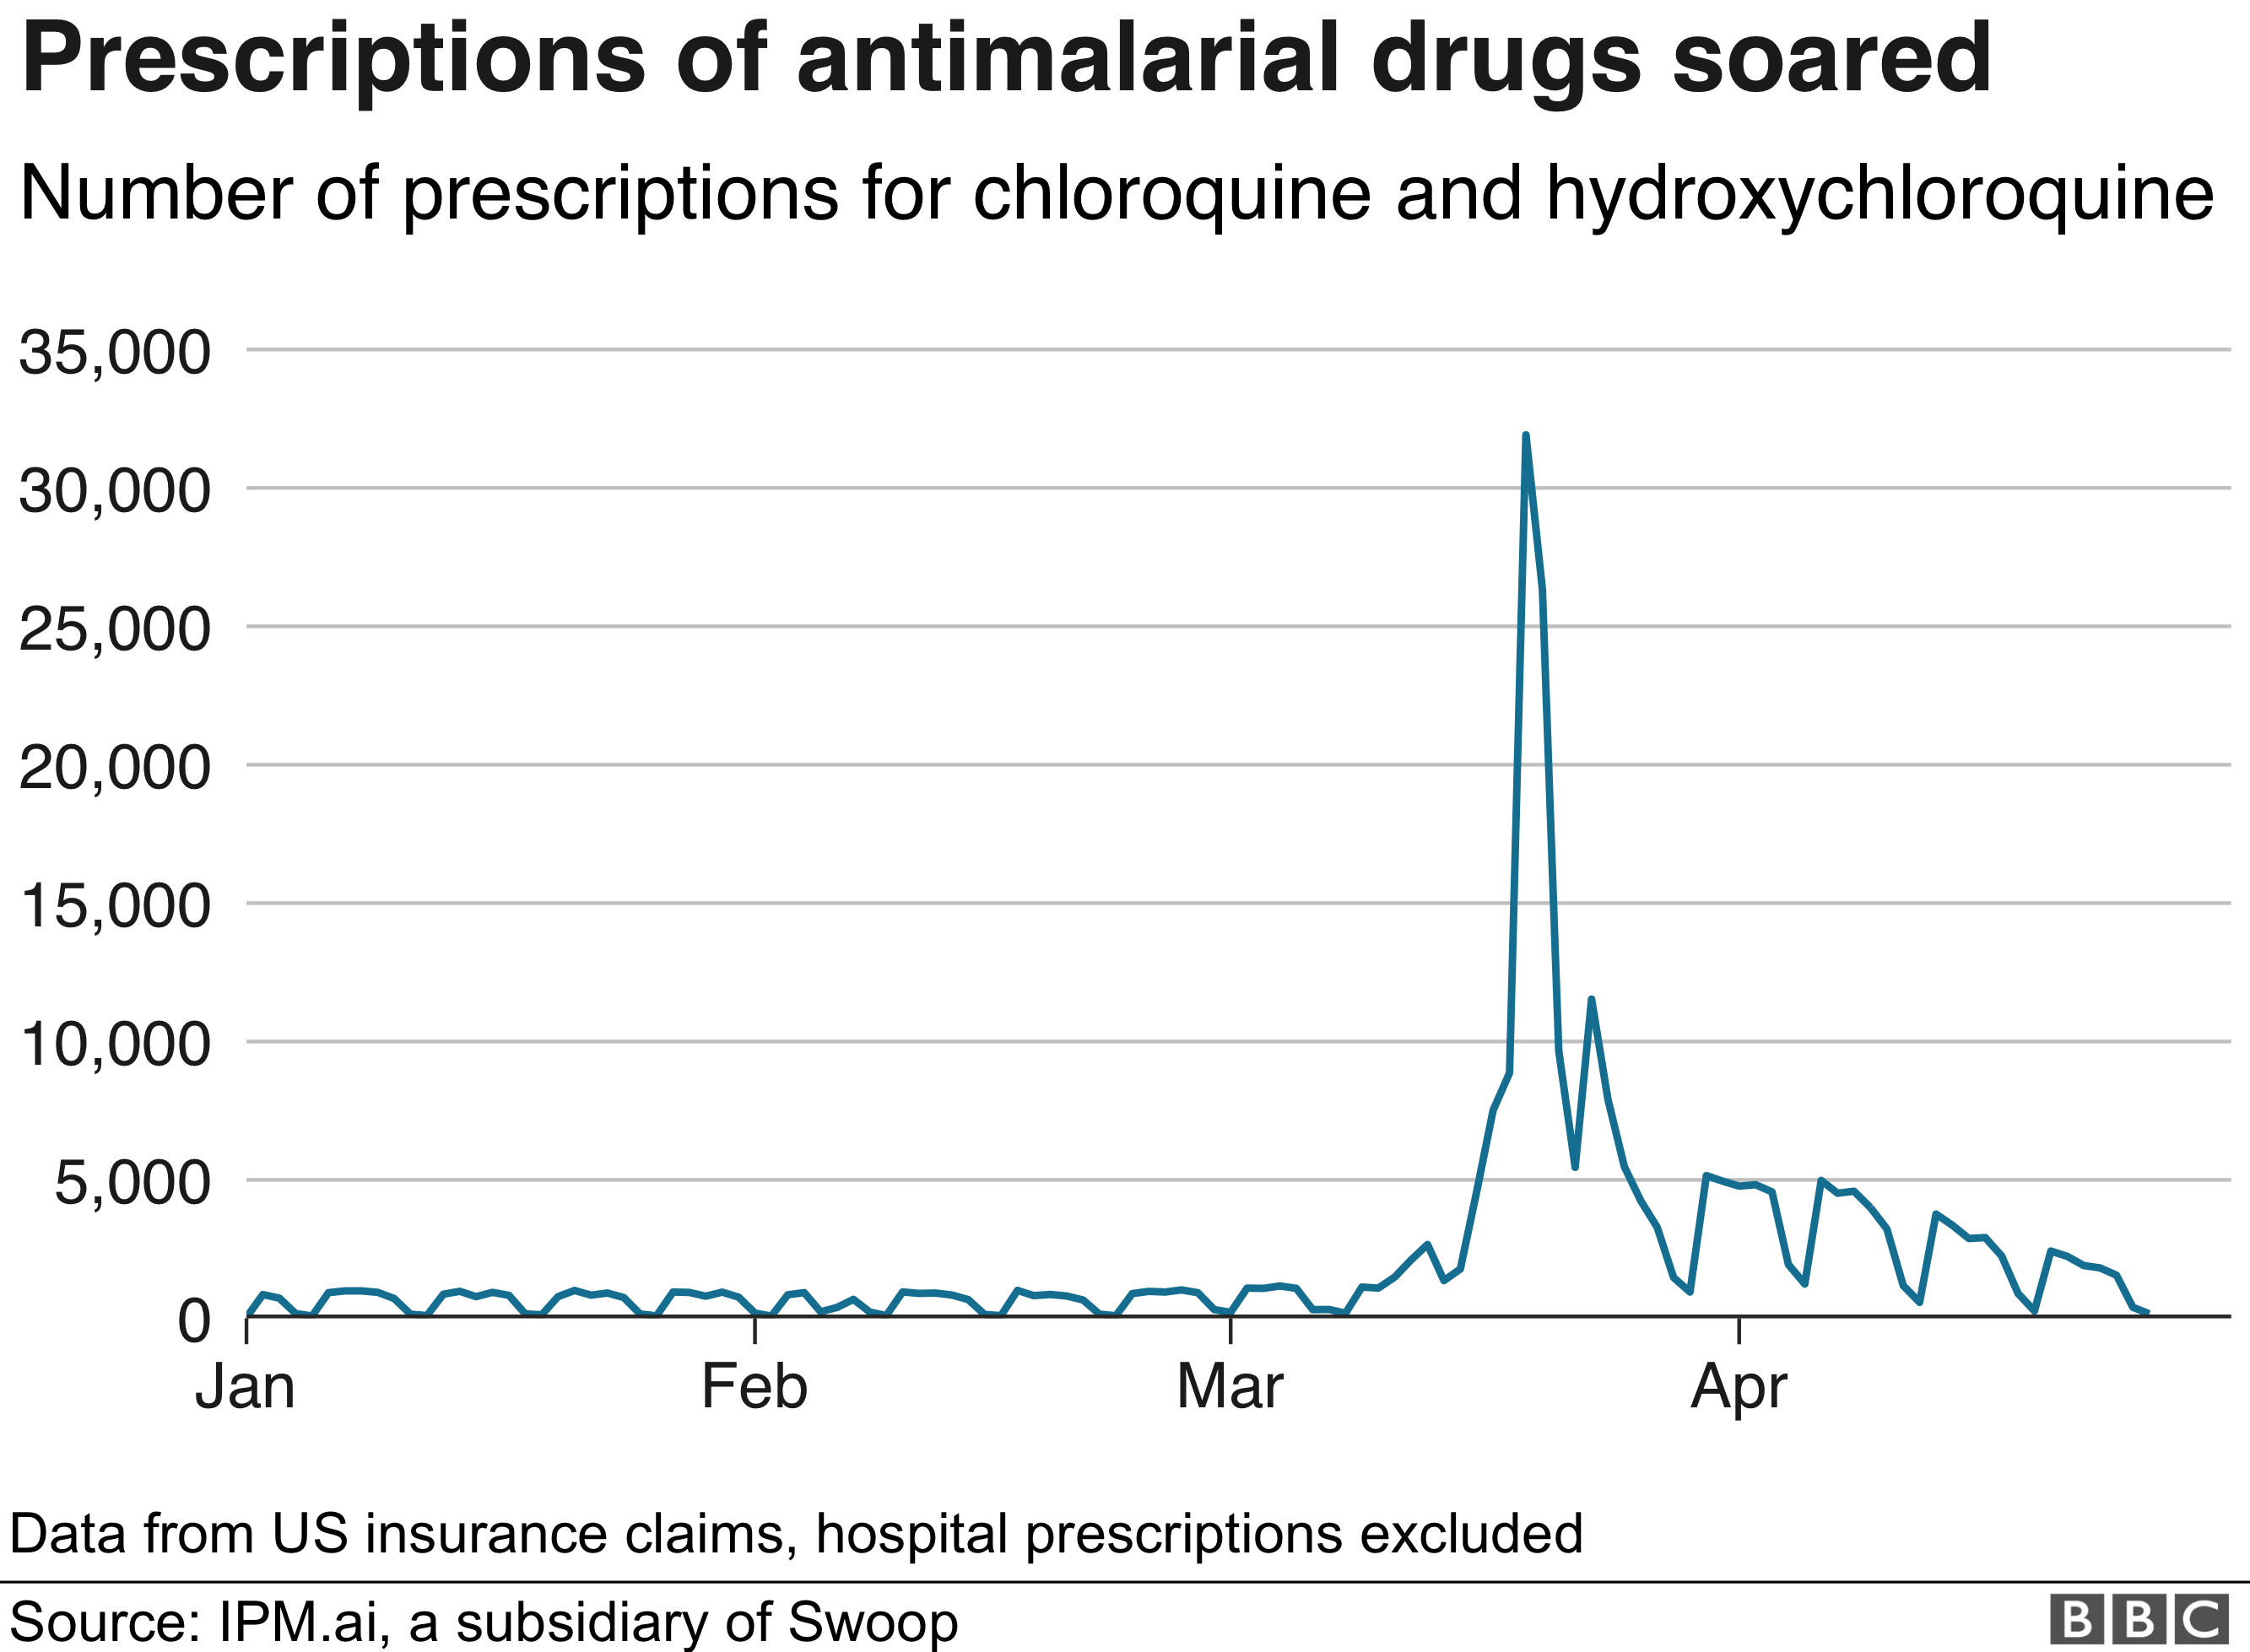 Chart showing prescriptions of antimalarial drugs in the US